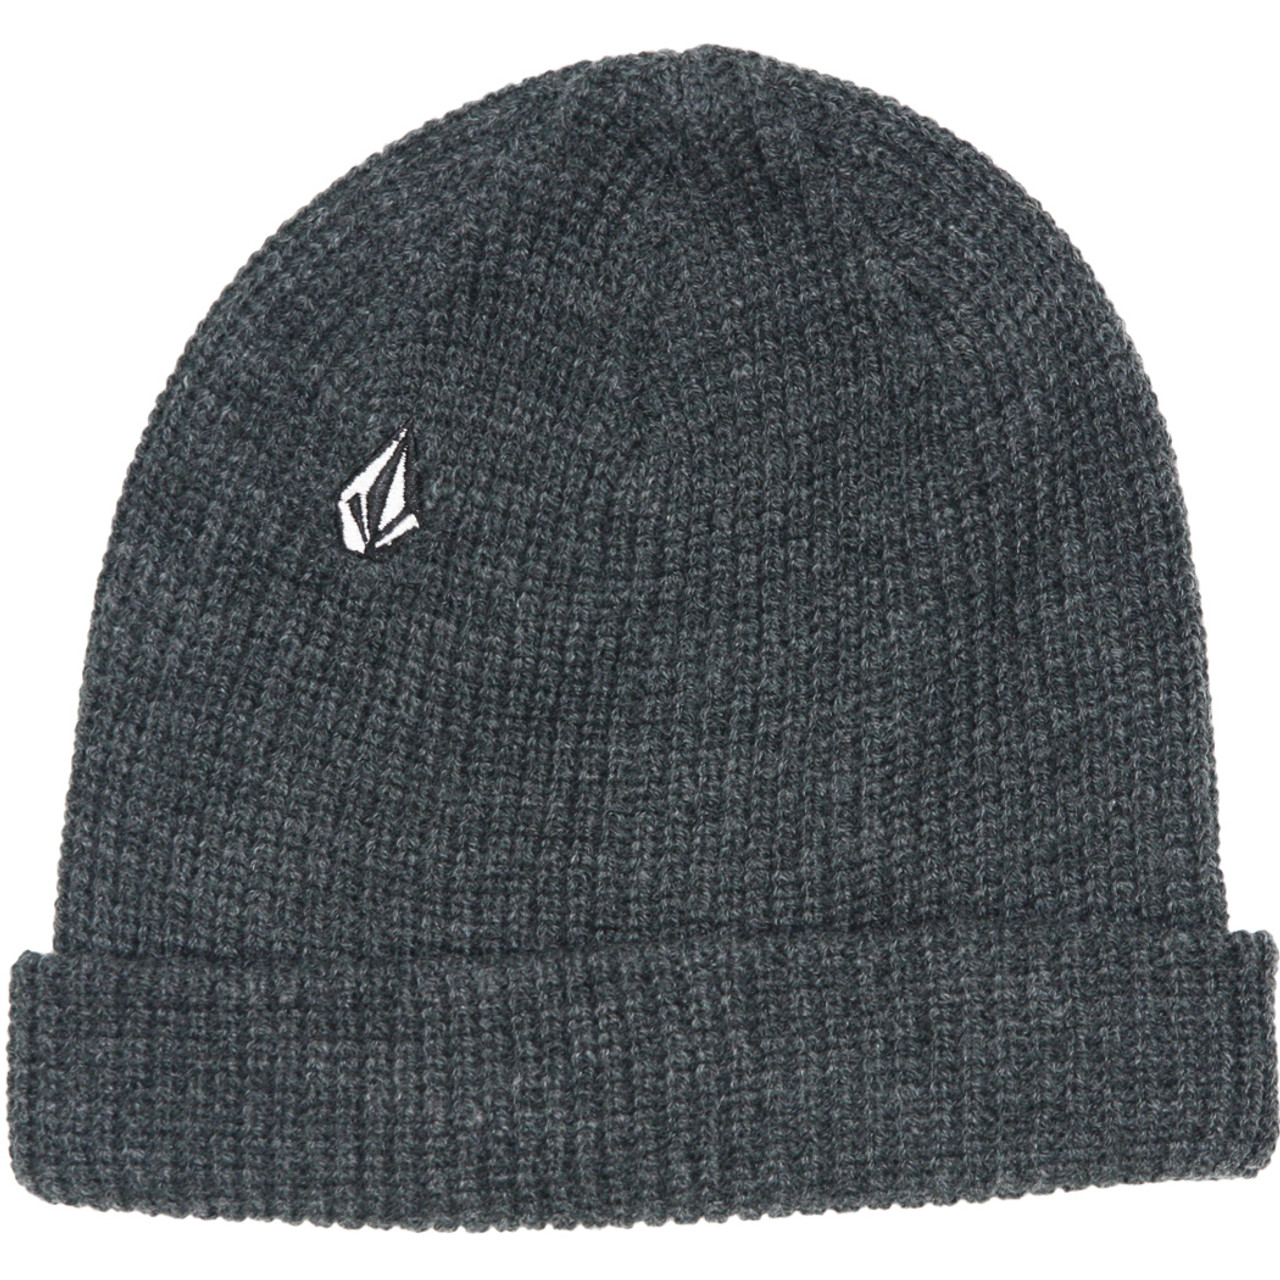 Volcom Beanie - Full Stone - Charcoal - Surf and Dirt ac5635342399